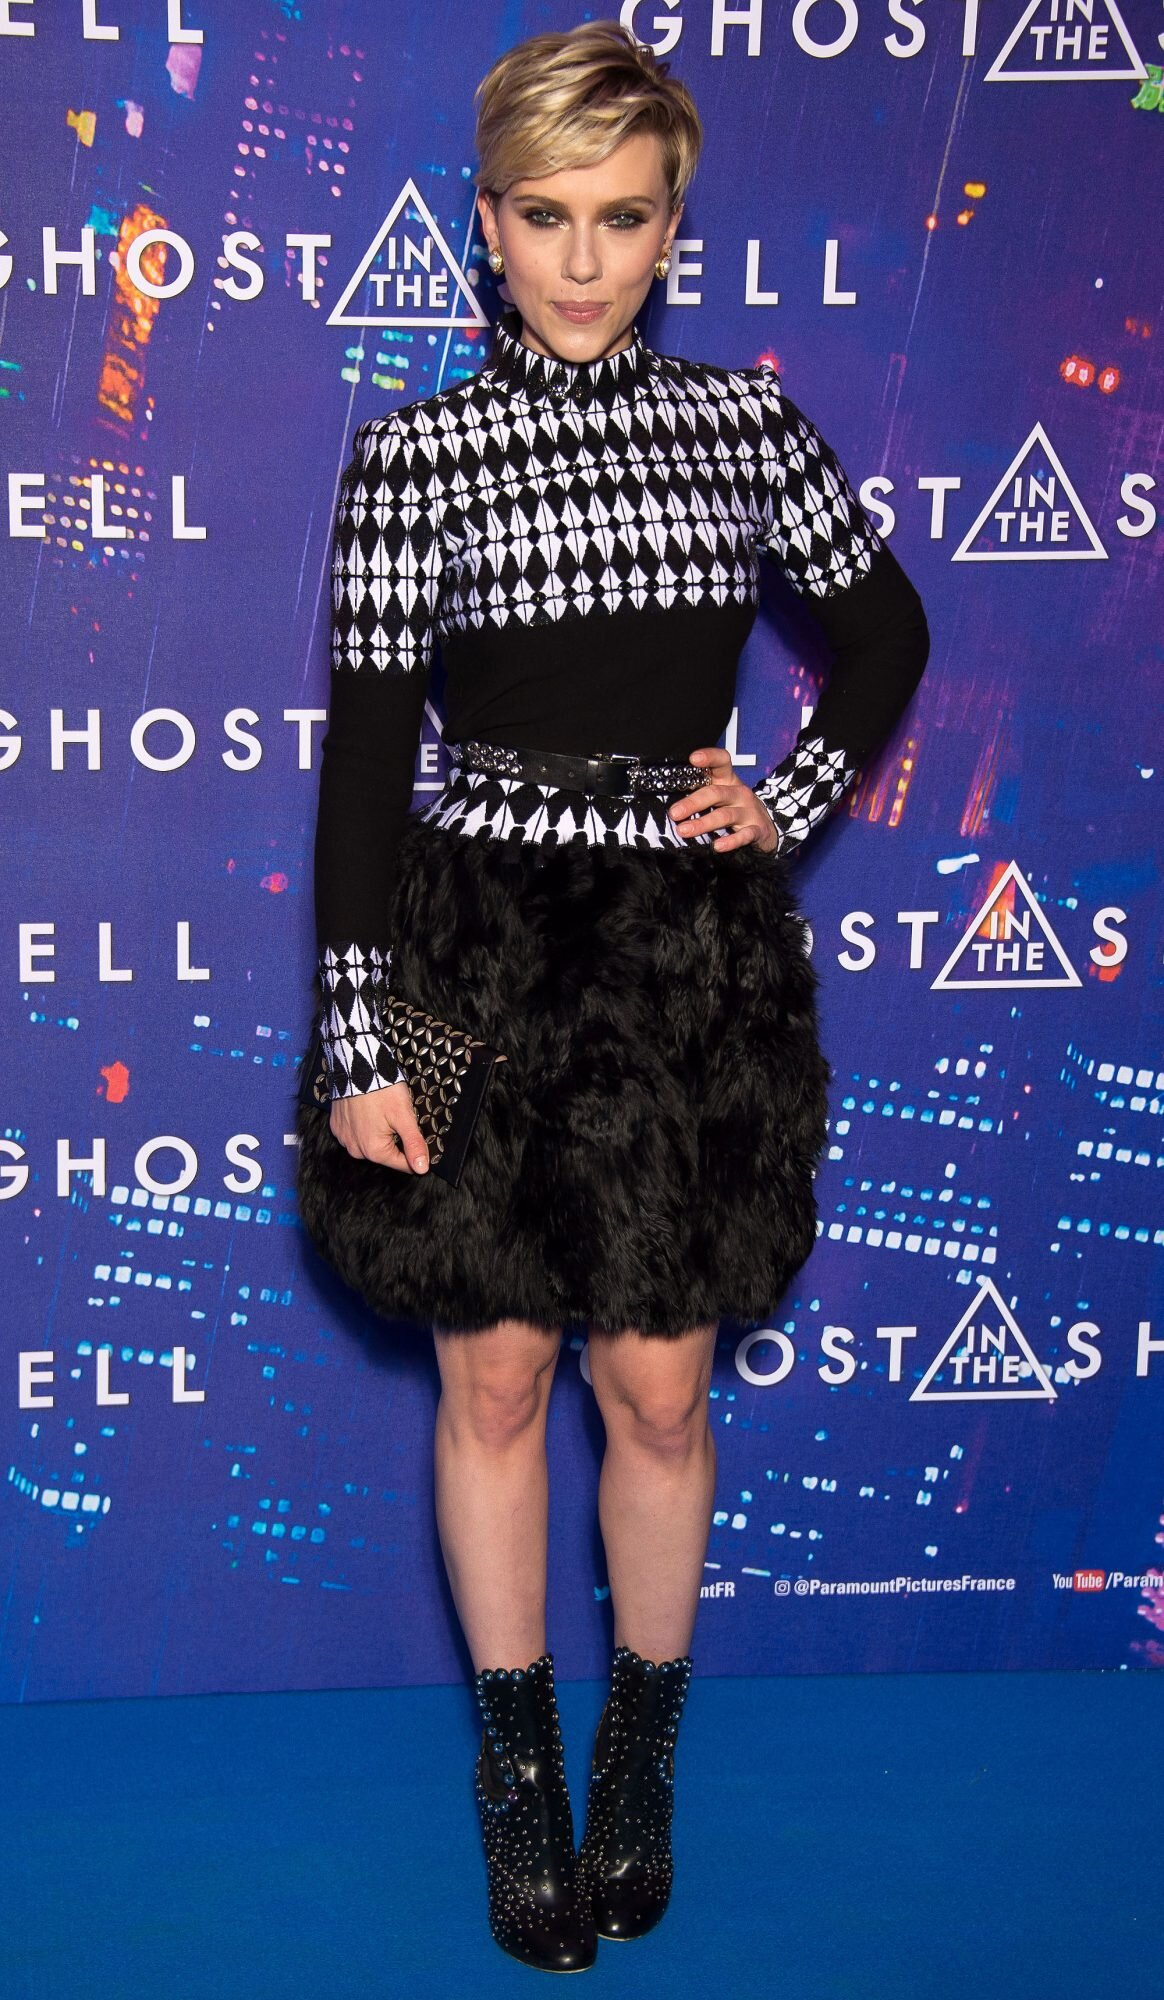 Scarlett Johansson In Azzedine Alaia At Ghost In The Shell Paris Premiere People Com